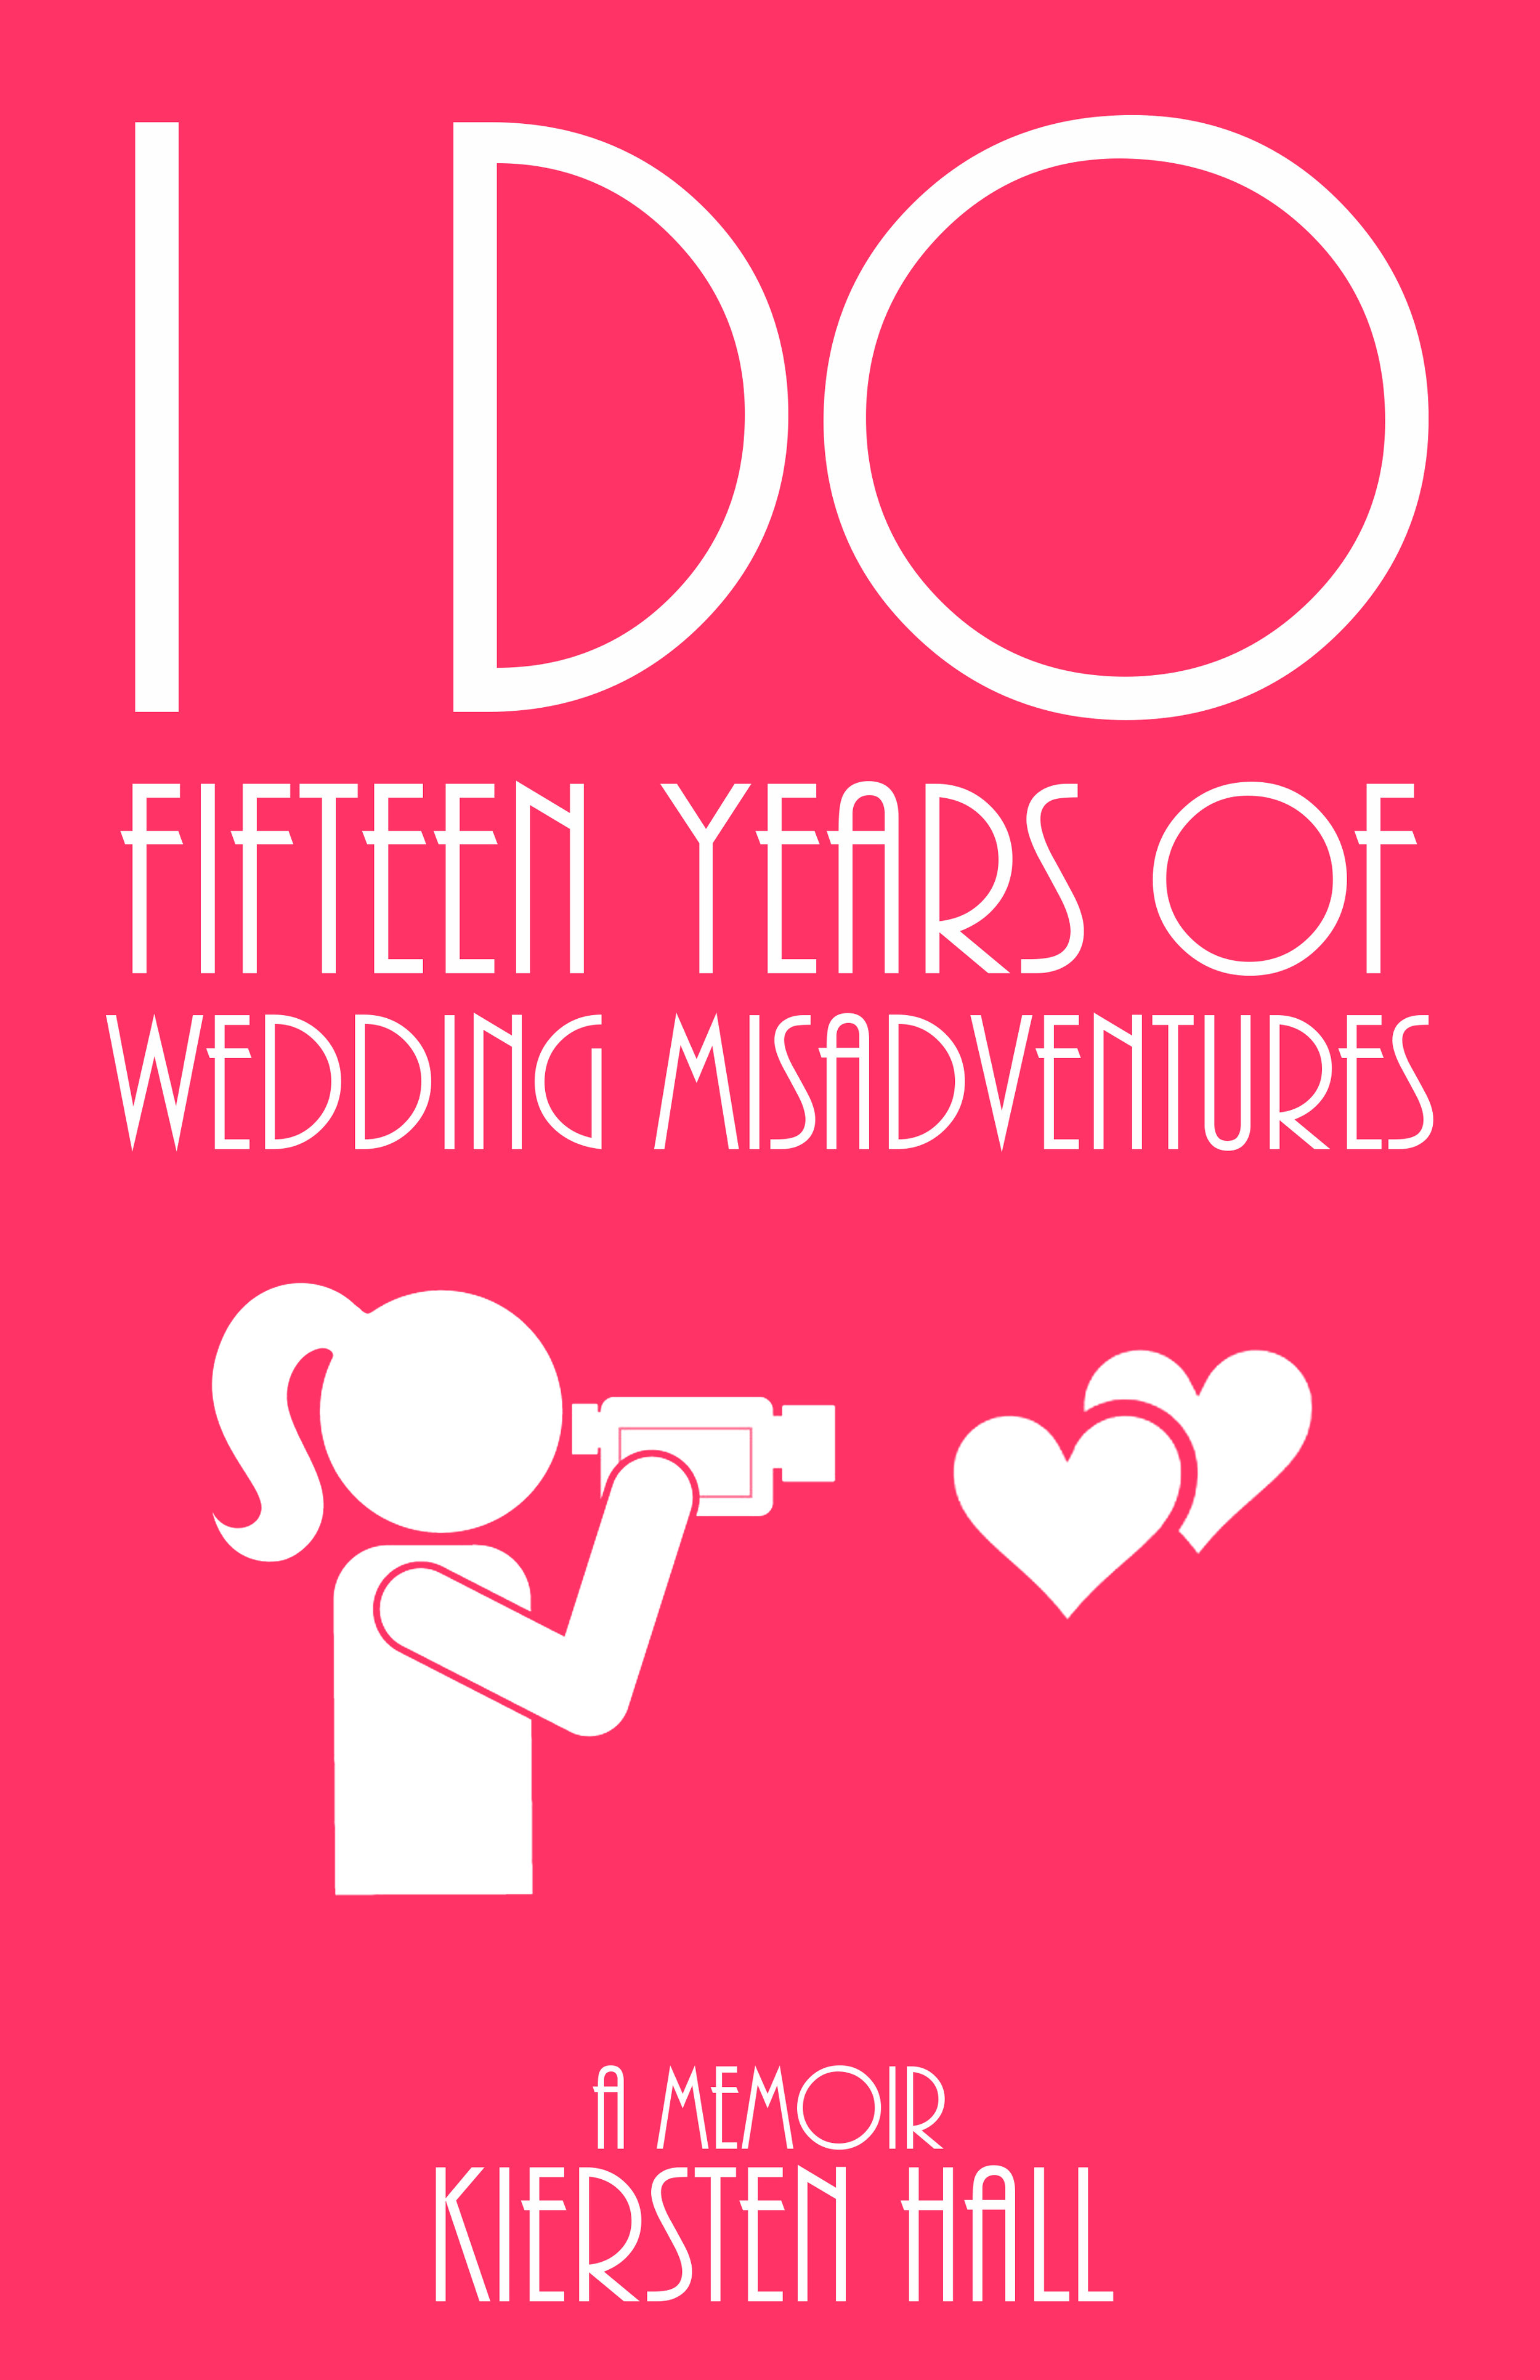 """""""I Do"""" Fifteen Years of Wedding Misadventures   Amazon Review: 'It's just an awesome page-turner. If you're getting married, you definitely need to buy """"I Do"""". If you're not getting married/already have gotten married and you're looking for some good laughs, """"I Do"""" is totally worth it. Kiersten's style of writing is just really refreshing and makes funny stories even funnier – crisp, satirical prose elegantly put together. She takes years of great stories and boils them down to the best ones for the reader to enjoy.'    Amazon Review: 'I would have never thought that a wedding videographer would deal with so many different situations! While reading this book, I encountered some interesting information, some winces and cringes, some genuine laughs out loud – but I can honestly say that all of it was entertaining! In addition, Kiersten's casual, witty, and amusing writing style made me feel like I was sitting in her living room as she shared these scenarios and anecdotes with a group of friends. Thanks for sharing!'    Kiersten Hall PO Box 623 Austin, MN 55912 khallbooks.com & khallbooks@gmail.com Copyright 2014-2018 by Kiersten Hall K Hall Books: ISBN: 9780692791875 (Paperback) ASIN: B072JH9KLN (E-Pub)  All rights reserved, including the right of reproduction in whole or in part in any form. Excerpts from Wedding & Event Directory Windows on Weddings, Inc. Copyright 1999 & 2000 by Kiersten Farr, nee Hall All rights reserved, including the right of reproduction in whole or in part in any form. Between 1990 through 2006, I co-owned """"I Do"""" Productions Wedding Videography. As a co-owner, I worked with the couples both pre and post-nuptial, as well as videotaped and edited the weddings. At the height of our successful years, """"I Do"""" actually had three video crews going out on Saturdays. The stories within this book are of the weddings I personally worked with, including videotaped and/or edited. This book is a work of non-fiction. Full names have been withheld for privacy """